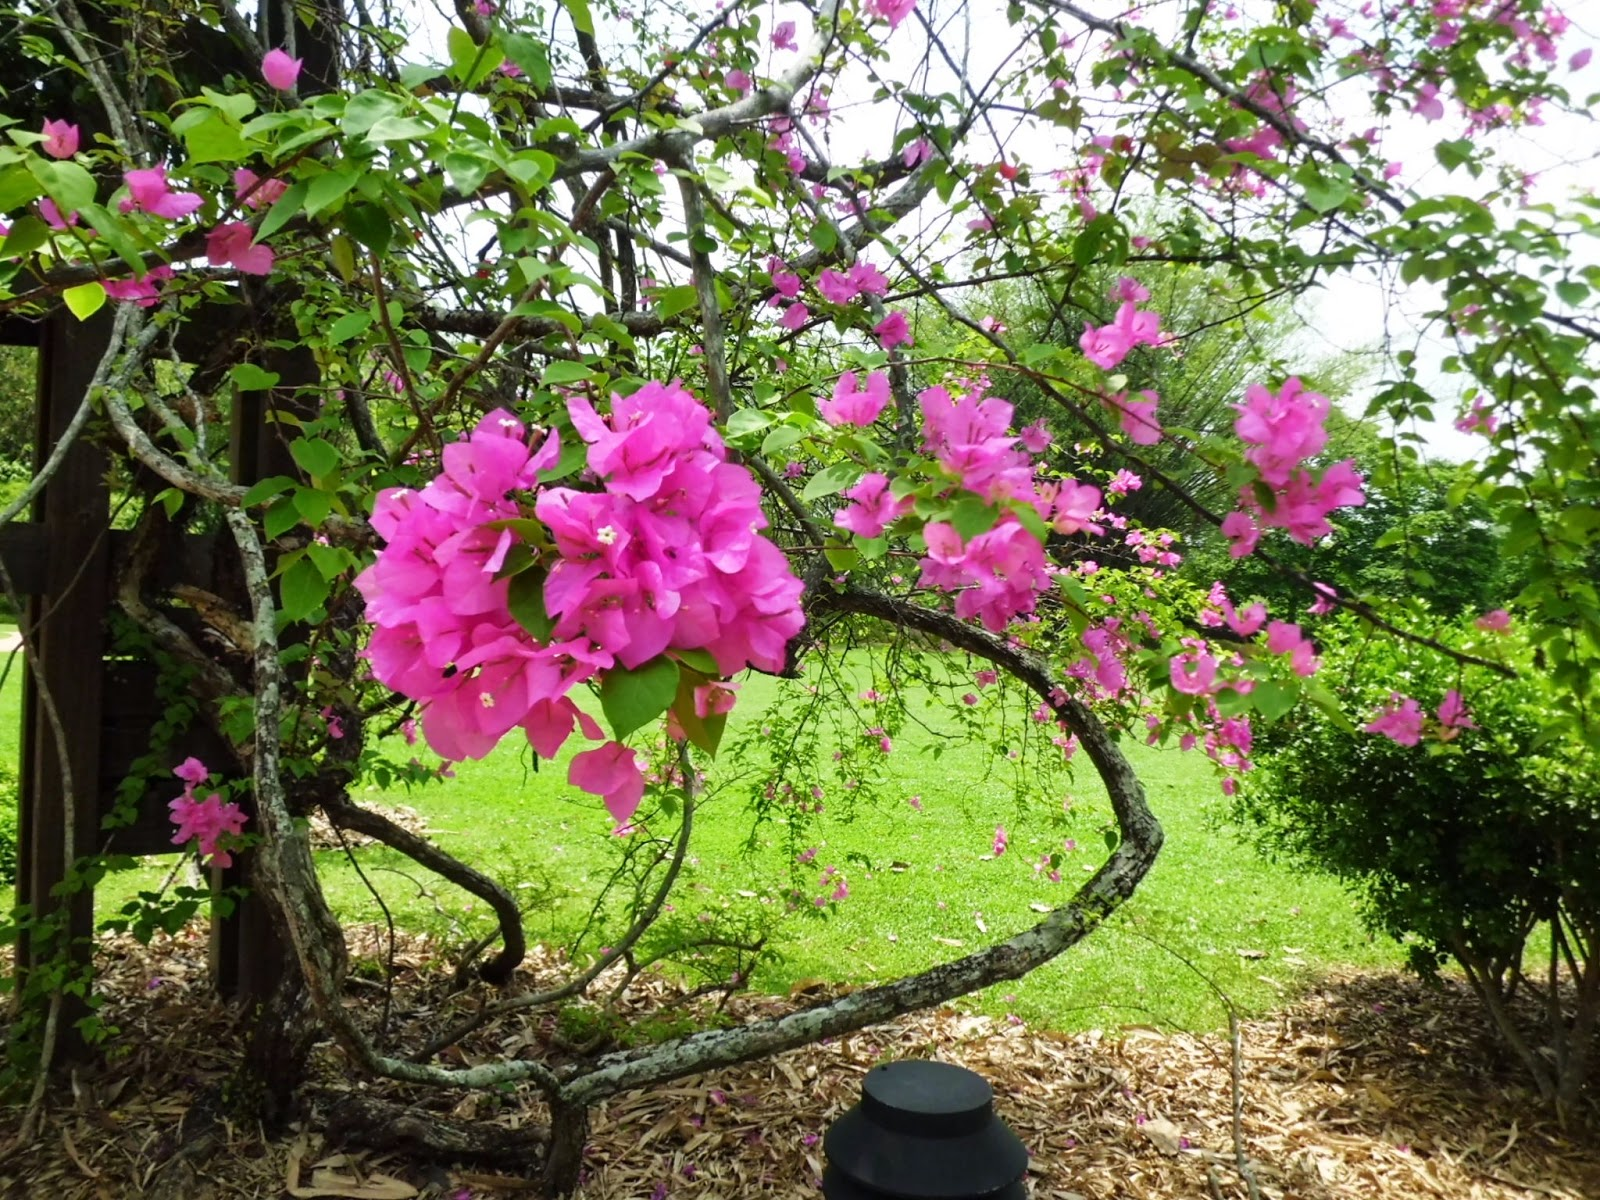 Pink Bougainvillea flower giving a cool, tranquil and peaceful environment.